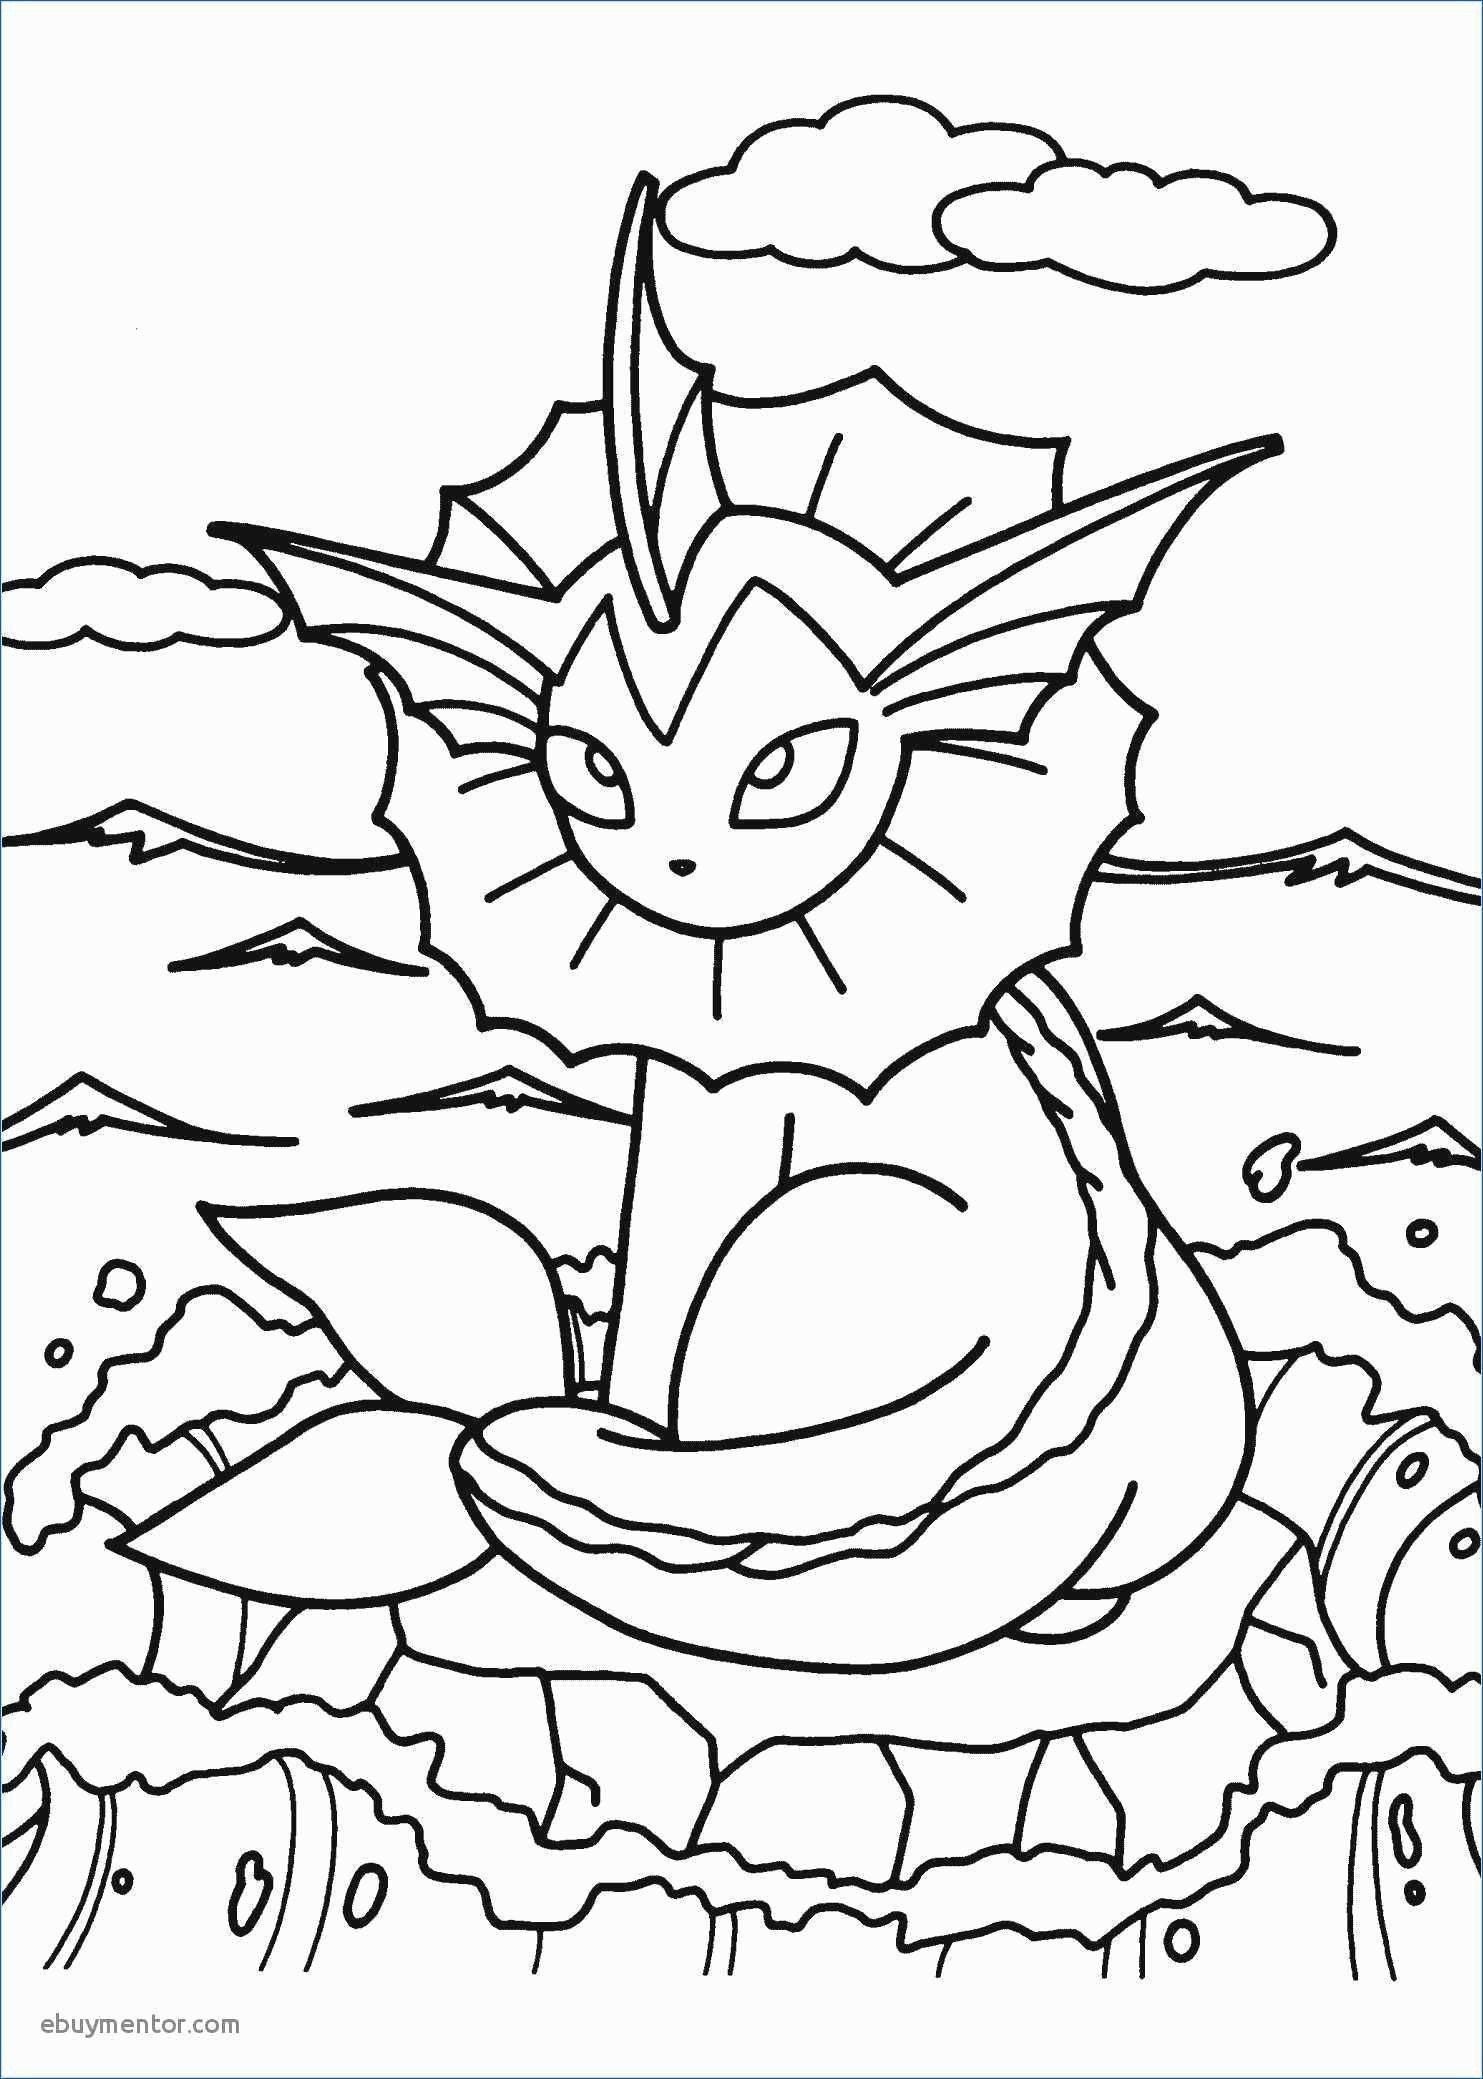 Disney Princesses Coloring Pages Elegant Lovely Free Coloring Pages Disney Princesses Pokemon Coloring Pages Disney Coloring Pages Pokemon Coloring